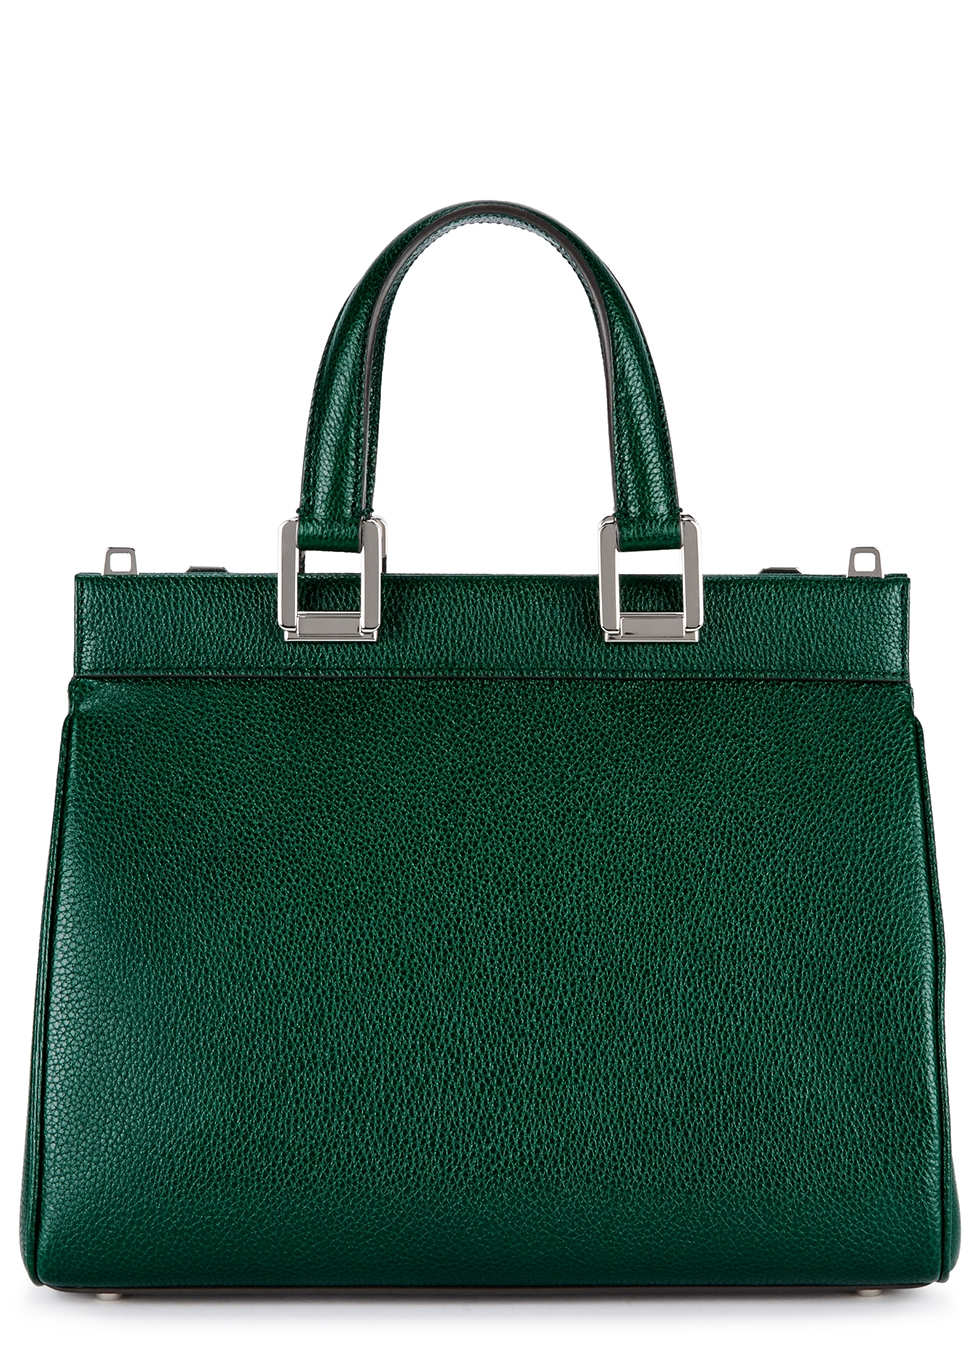 Zumi small leather top-handle bag - Gucci